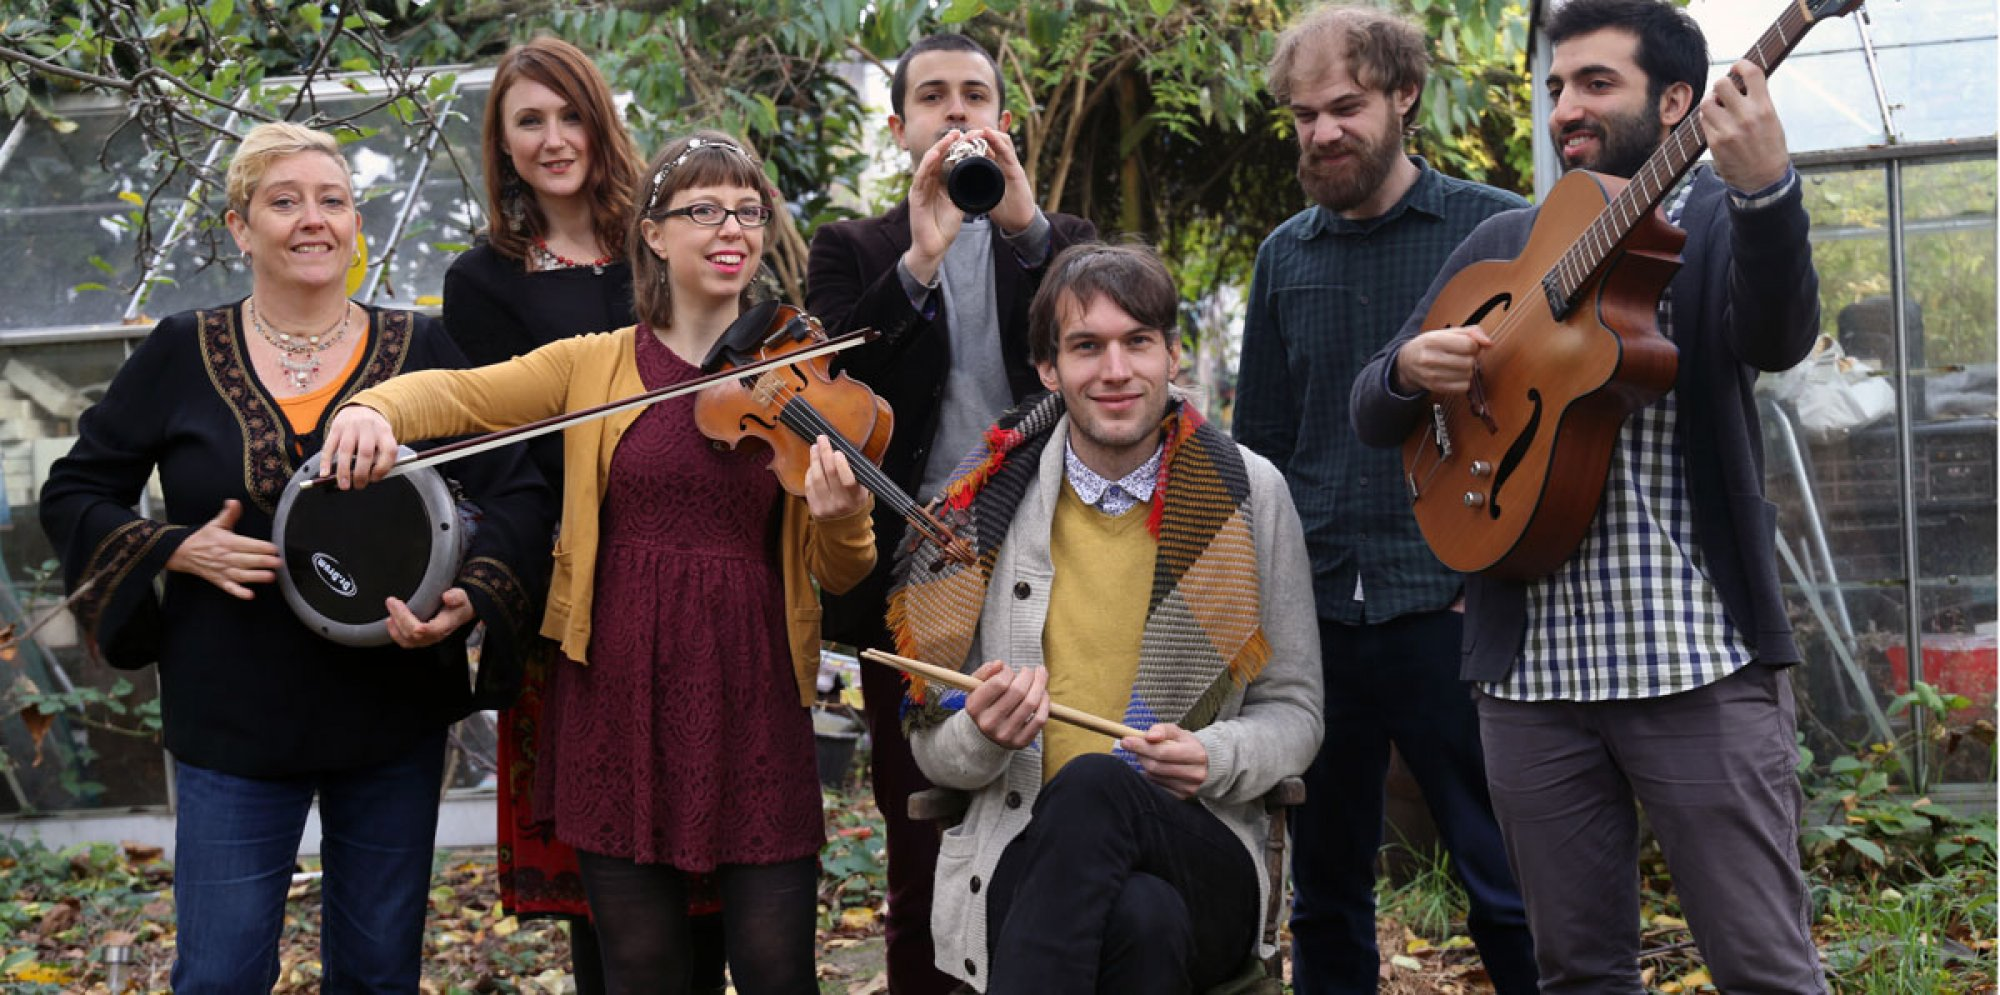 A group photo of musicians holding instruments including violins, guitar, drums and flute.